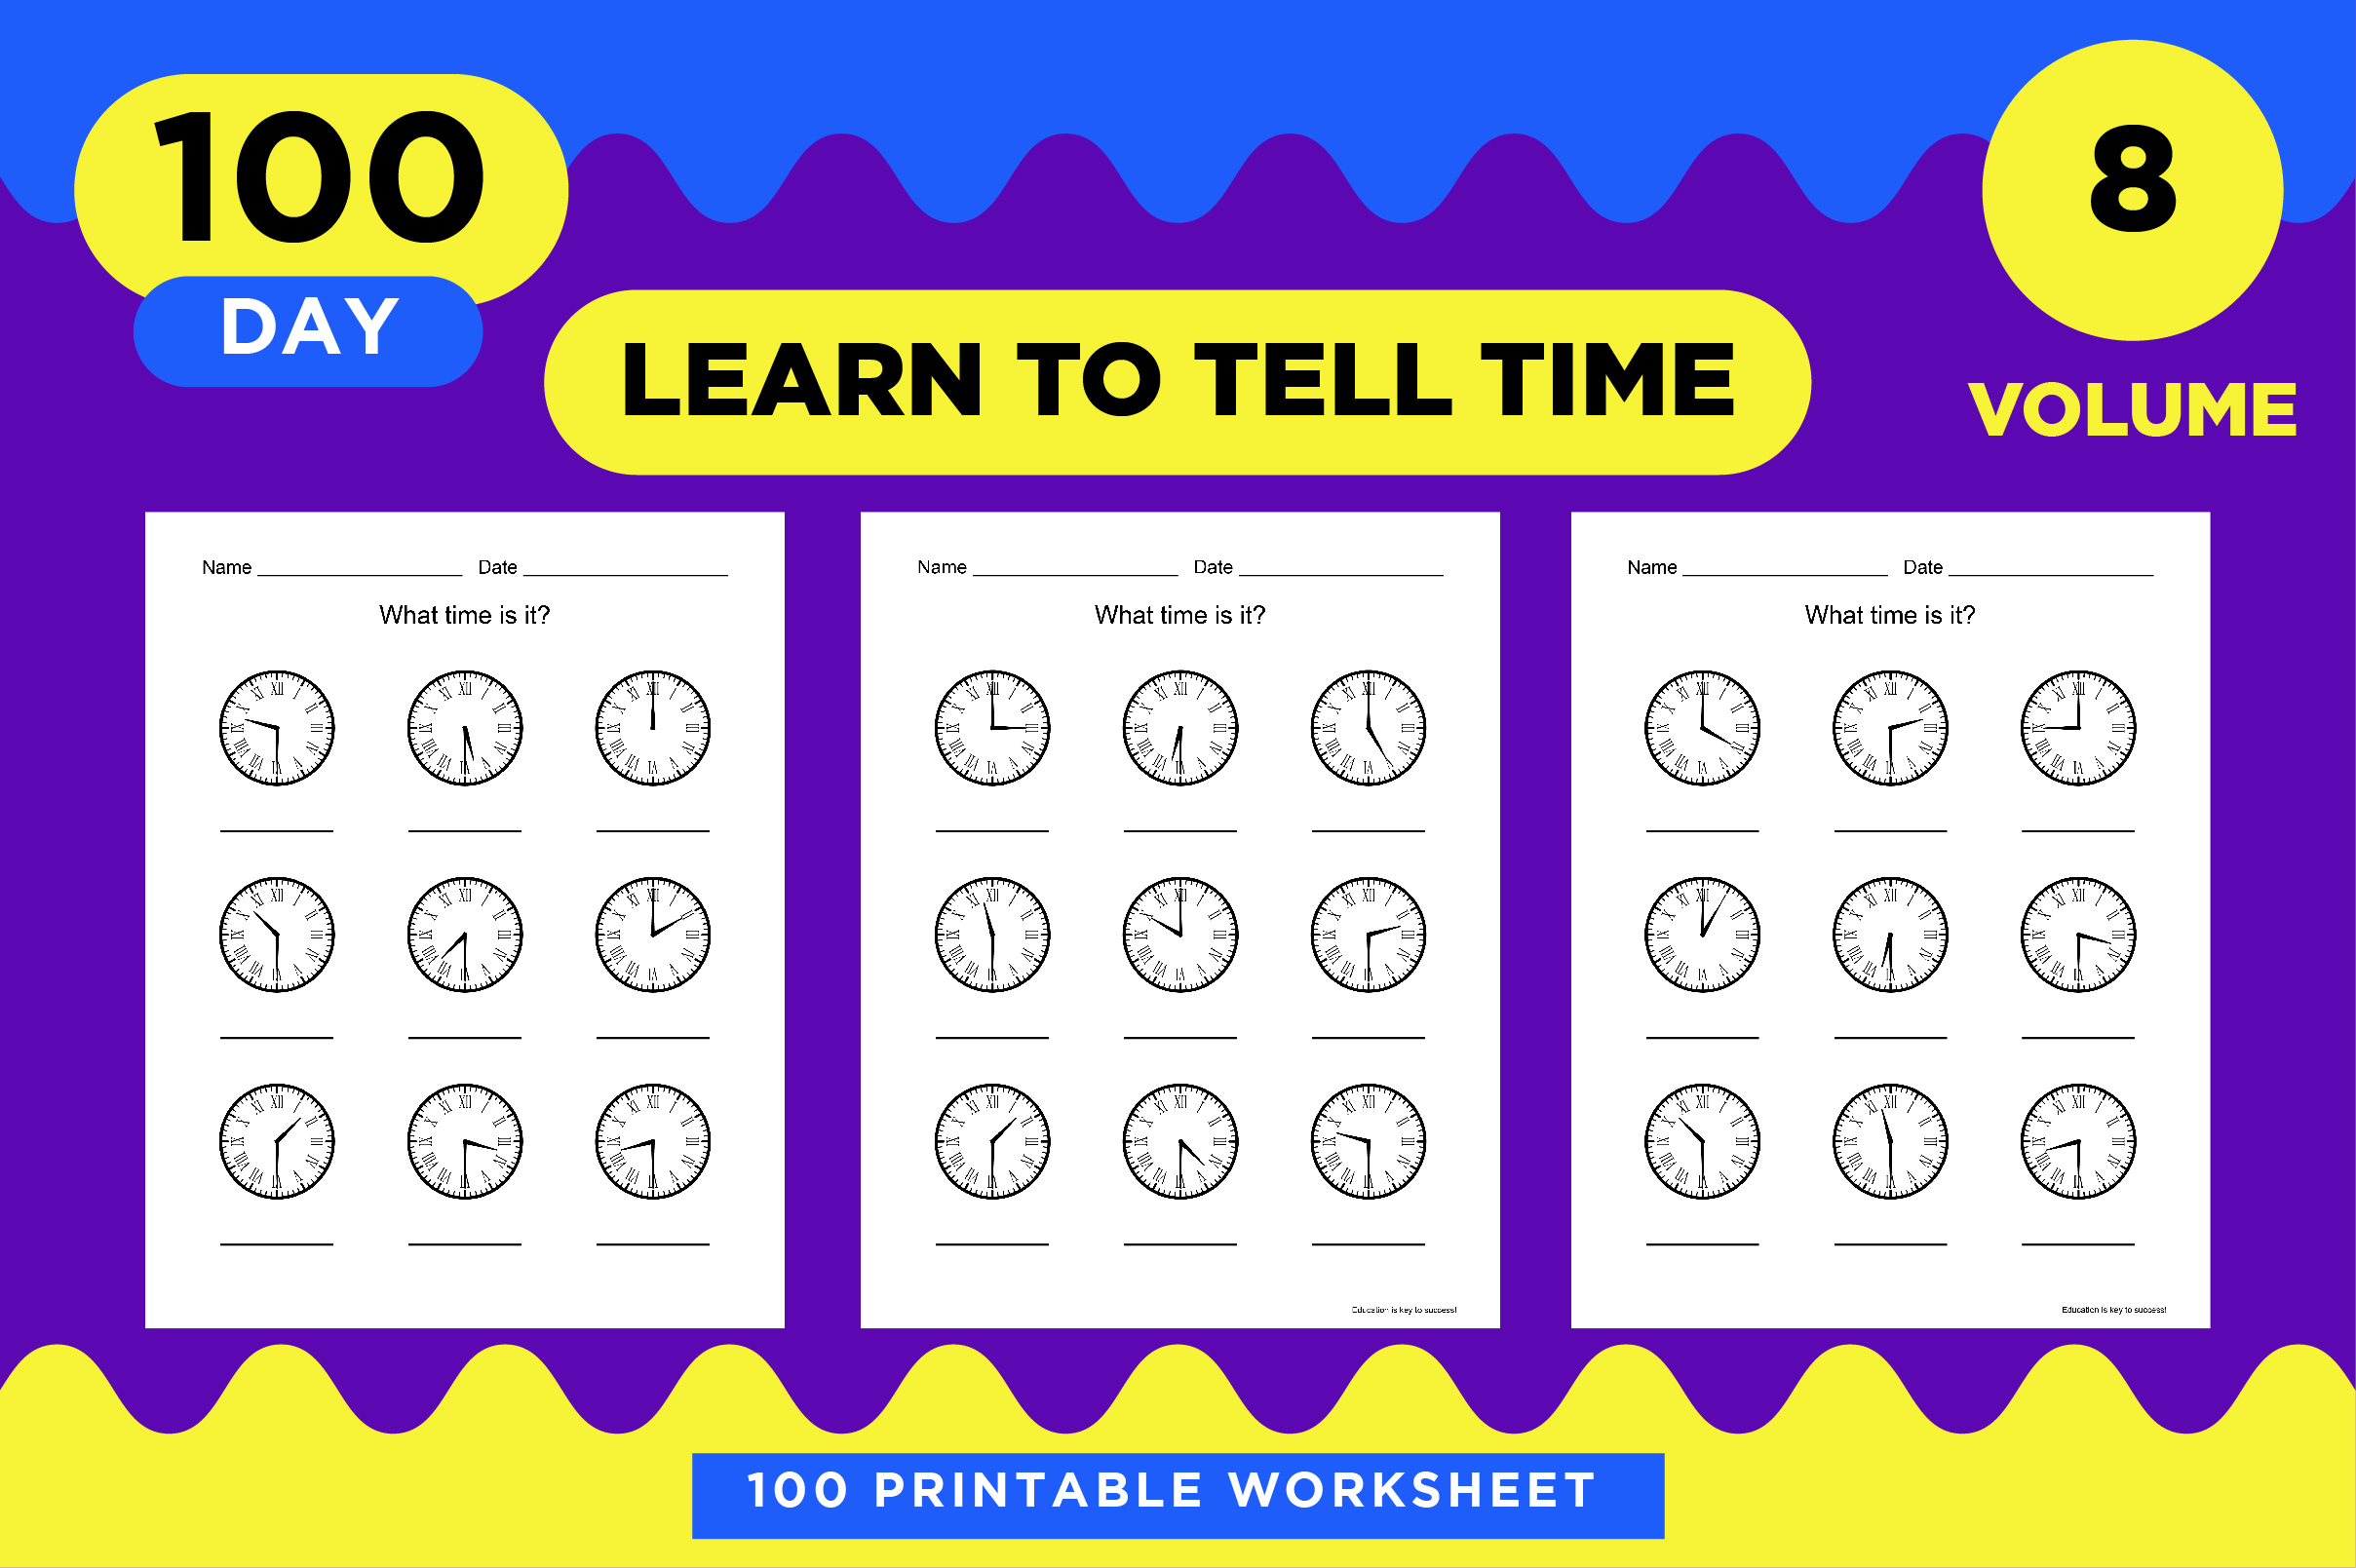 10 Printable Time Learning Worksheets